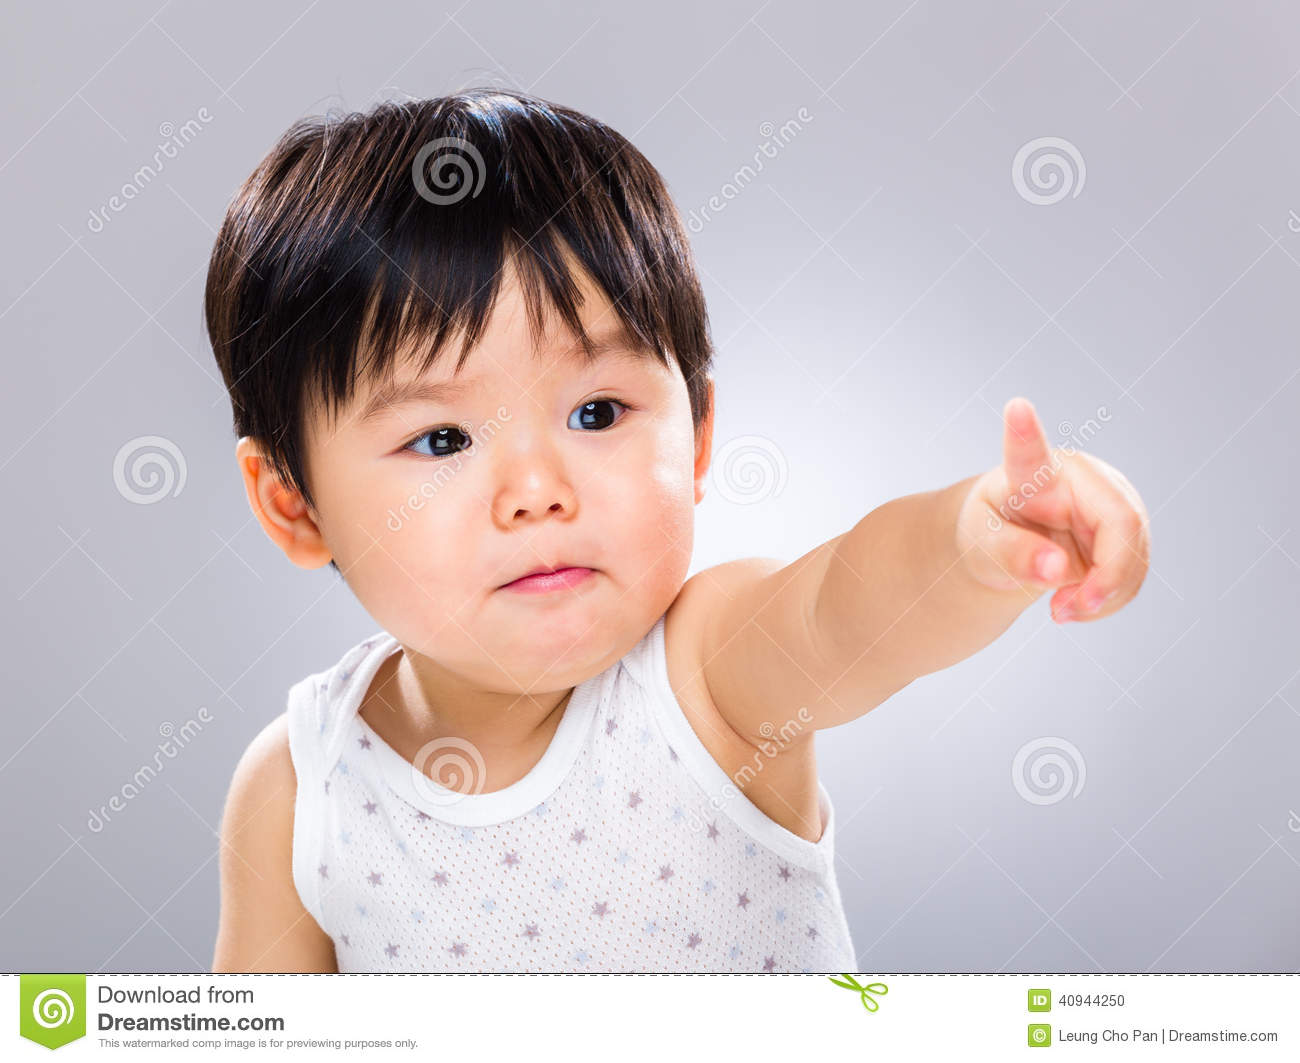 Baby Boy Pointing Finger Stock Photo - Image: 40944250 Cute Baby Pointing Finger